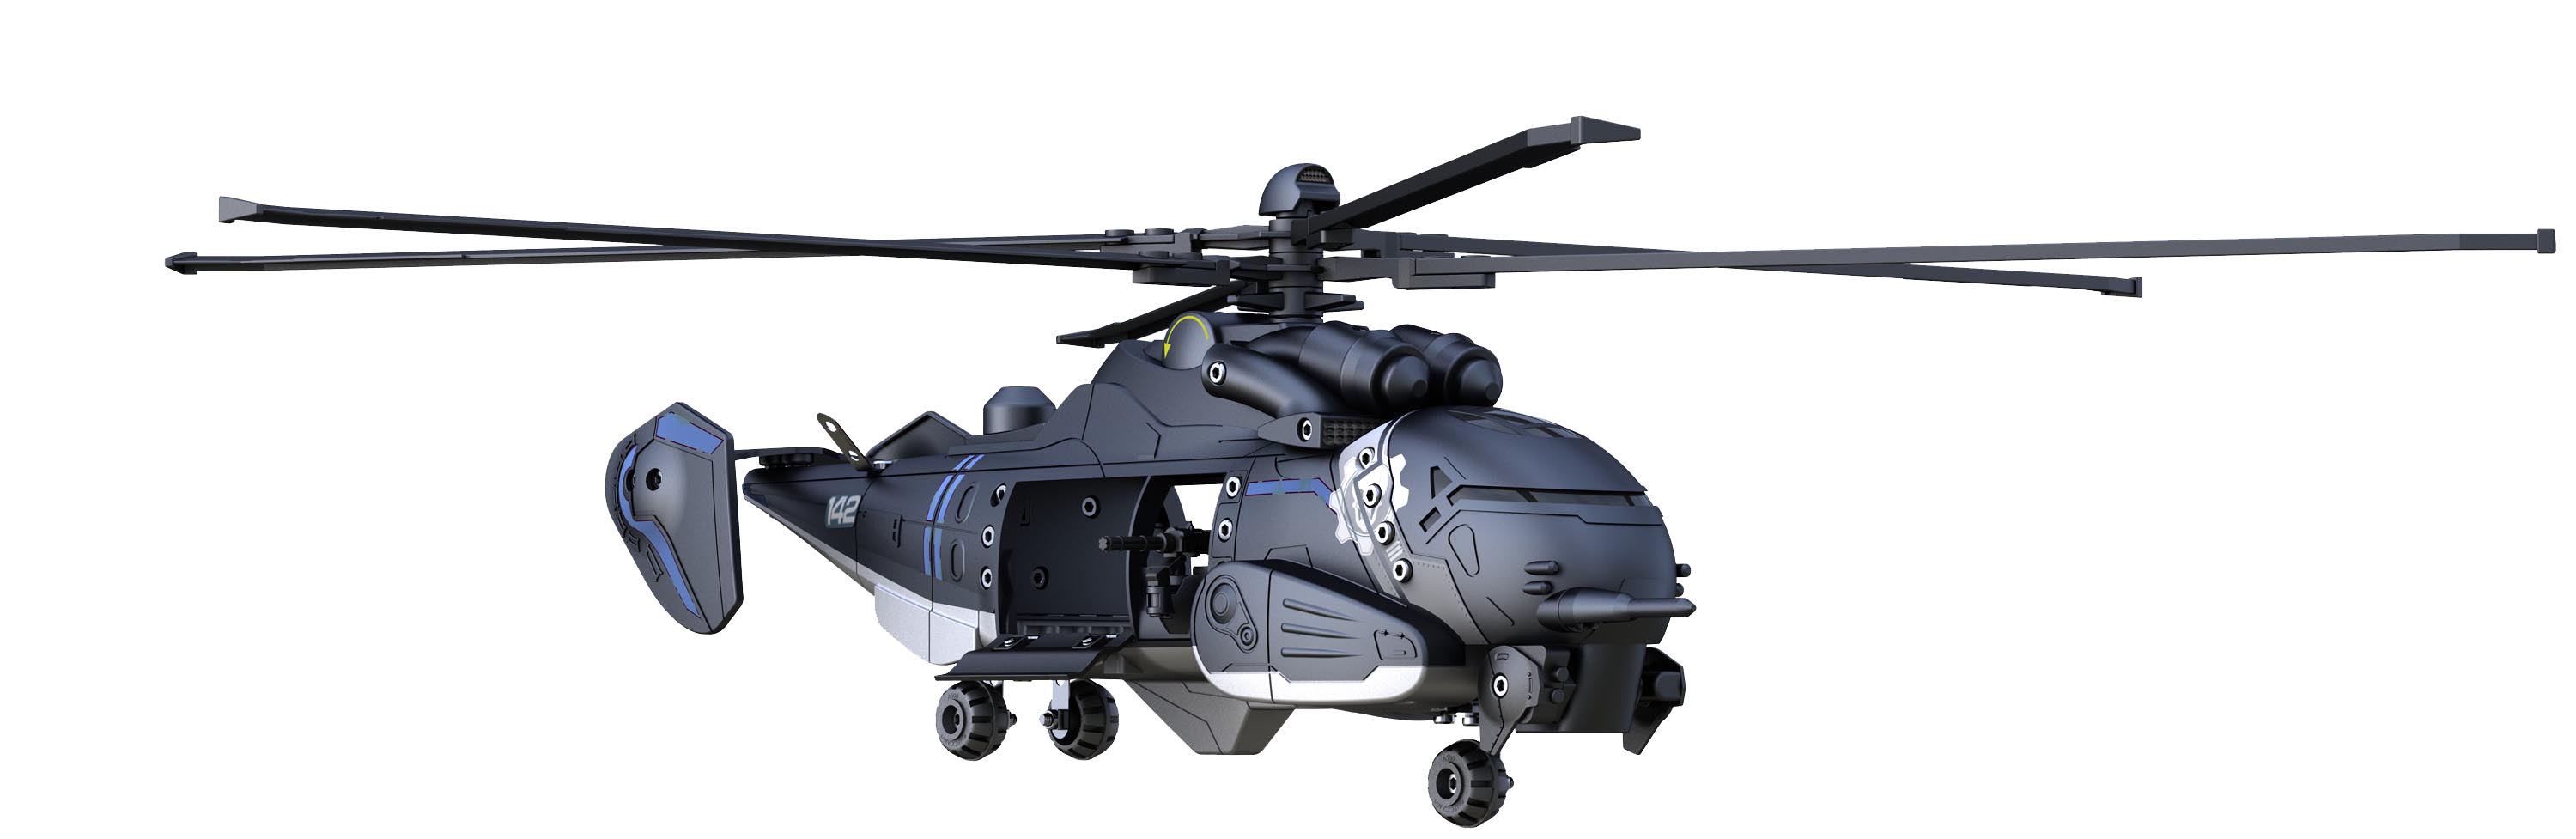 Helicopter Png image #40866